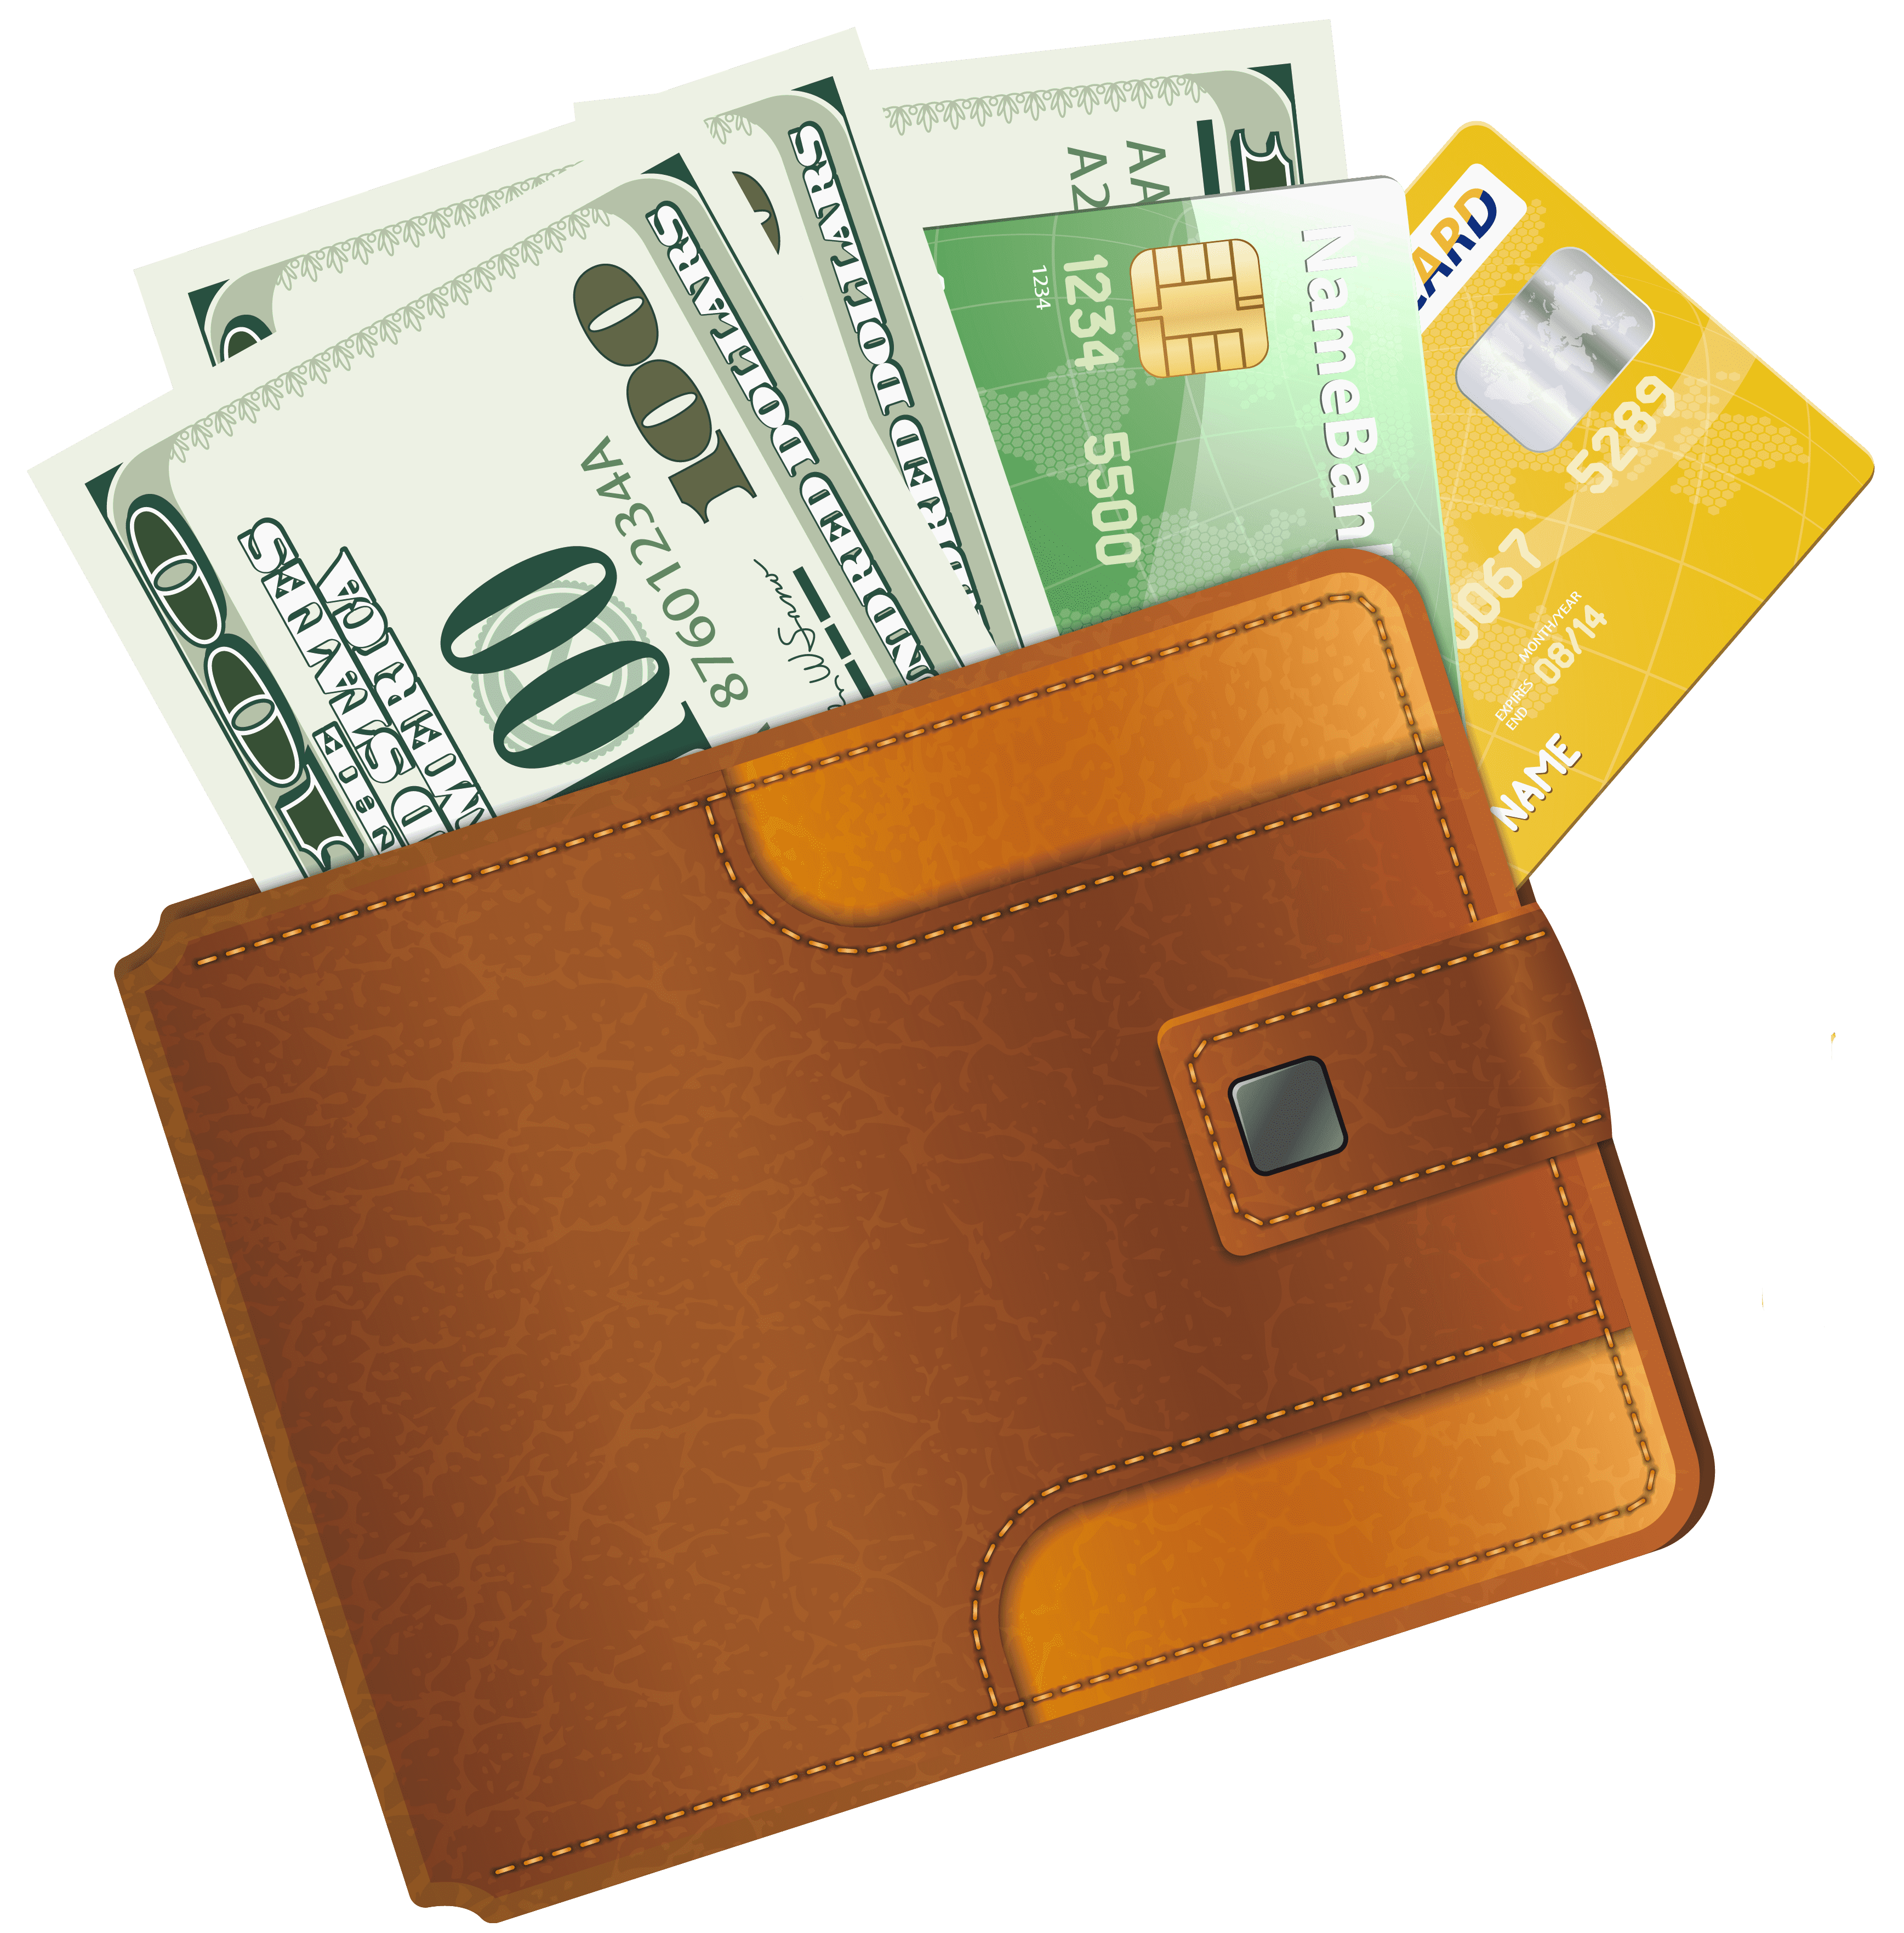 clip art royalty free library Open wallet clipart. With credit cards png.